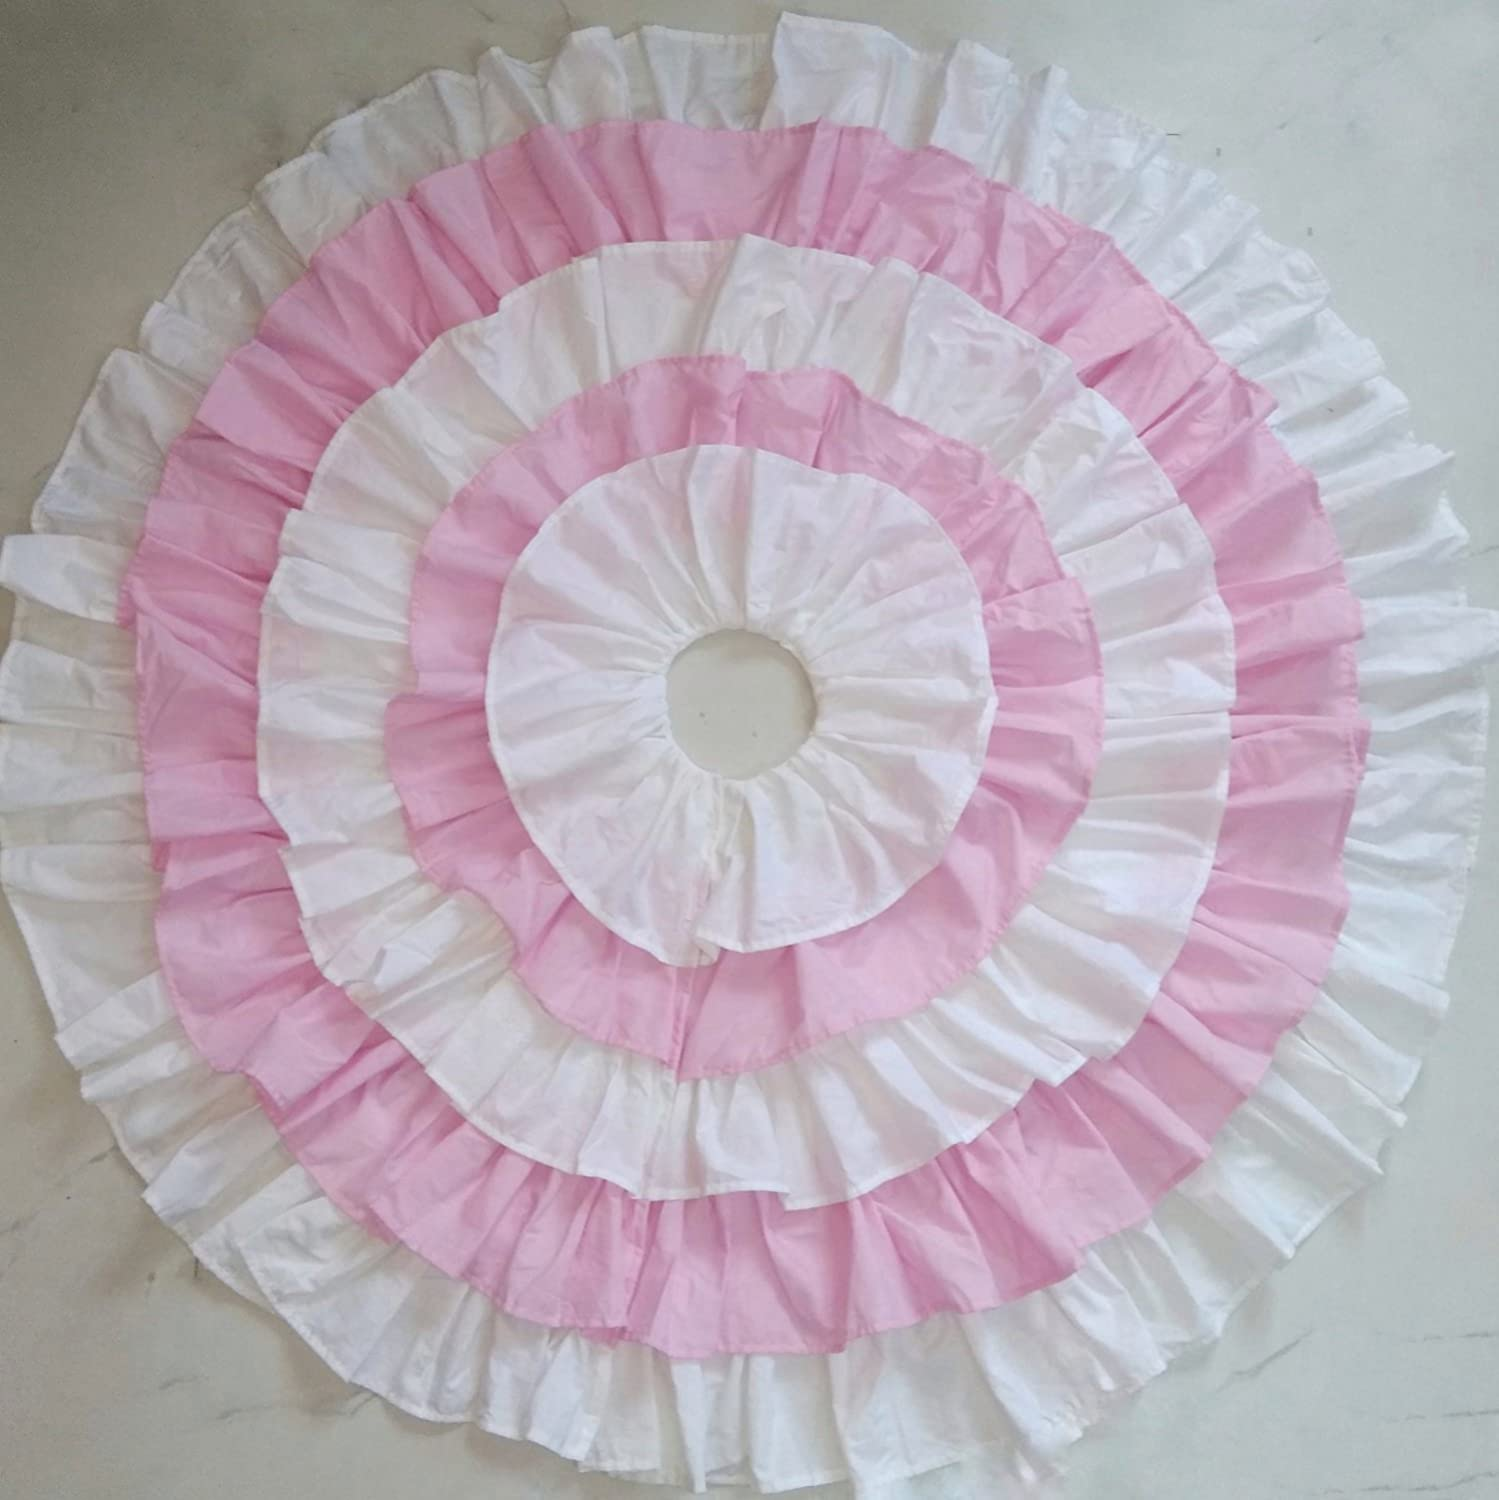 45 Inch Dia White and Pink Cotton Ruffled Tree Skirt enclosure